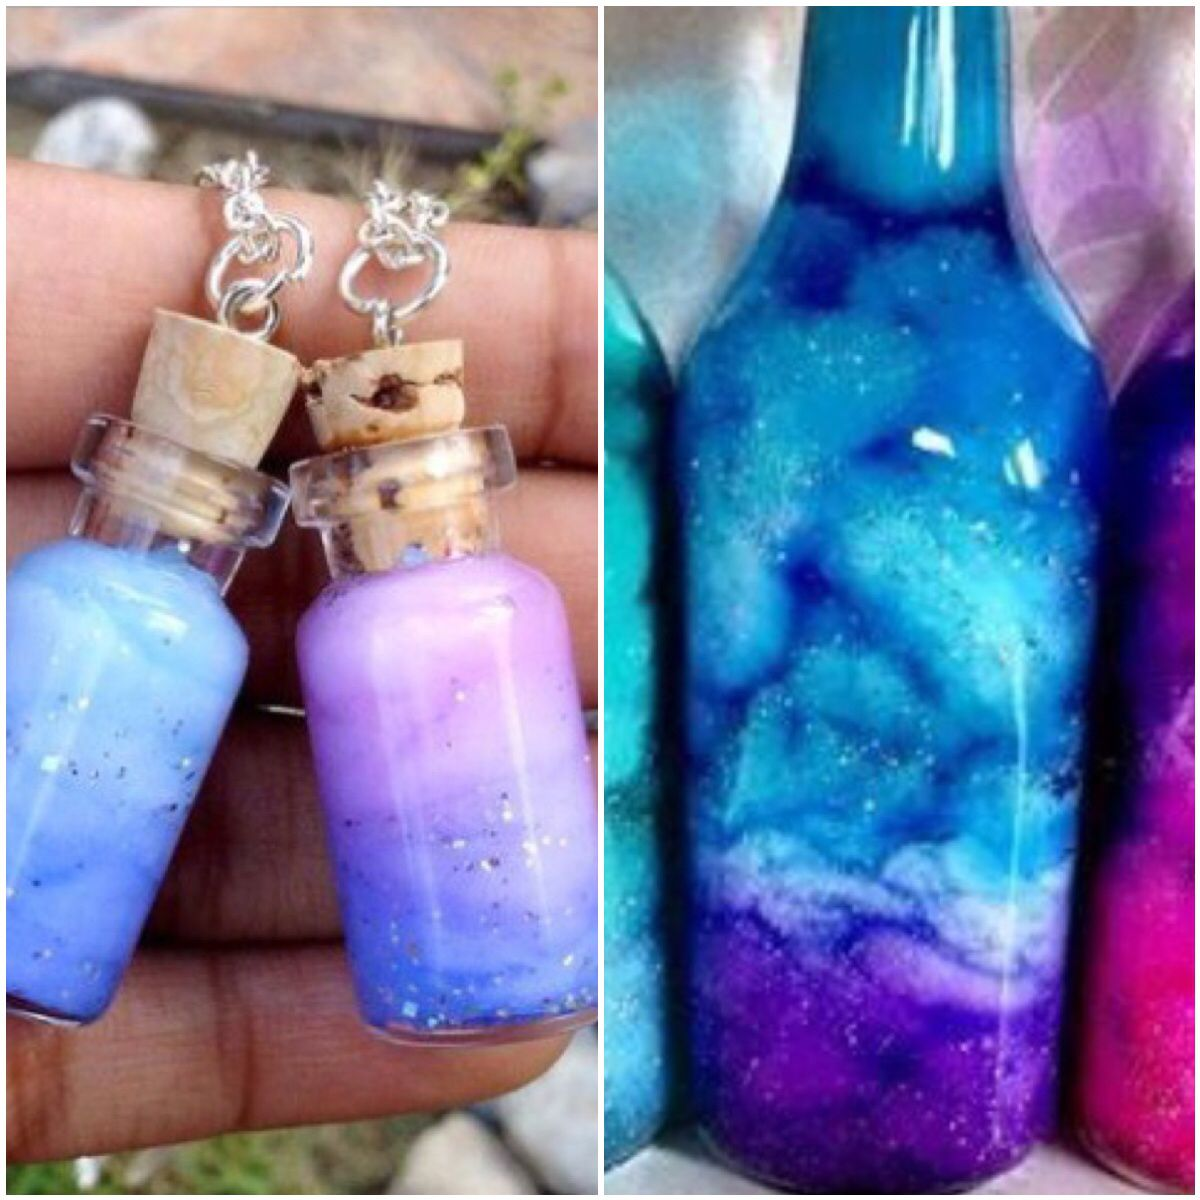 Pin by christina hostetter on cute crafts pinterest for Diy bottles and jars